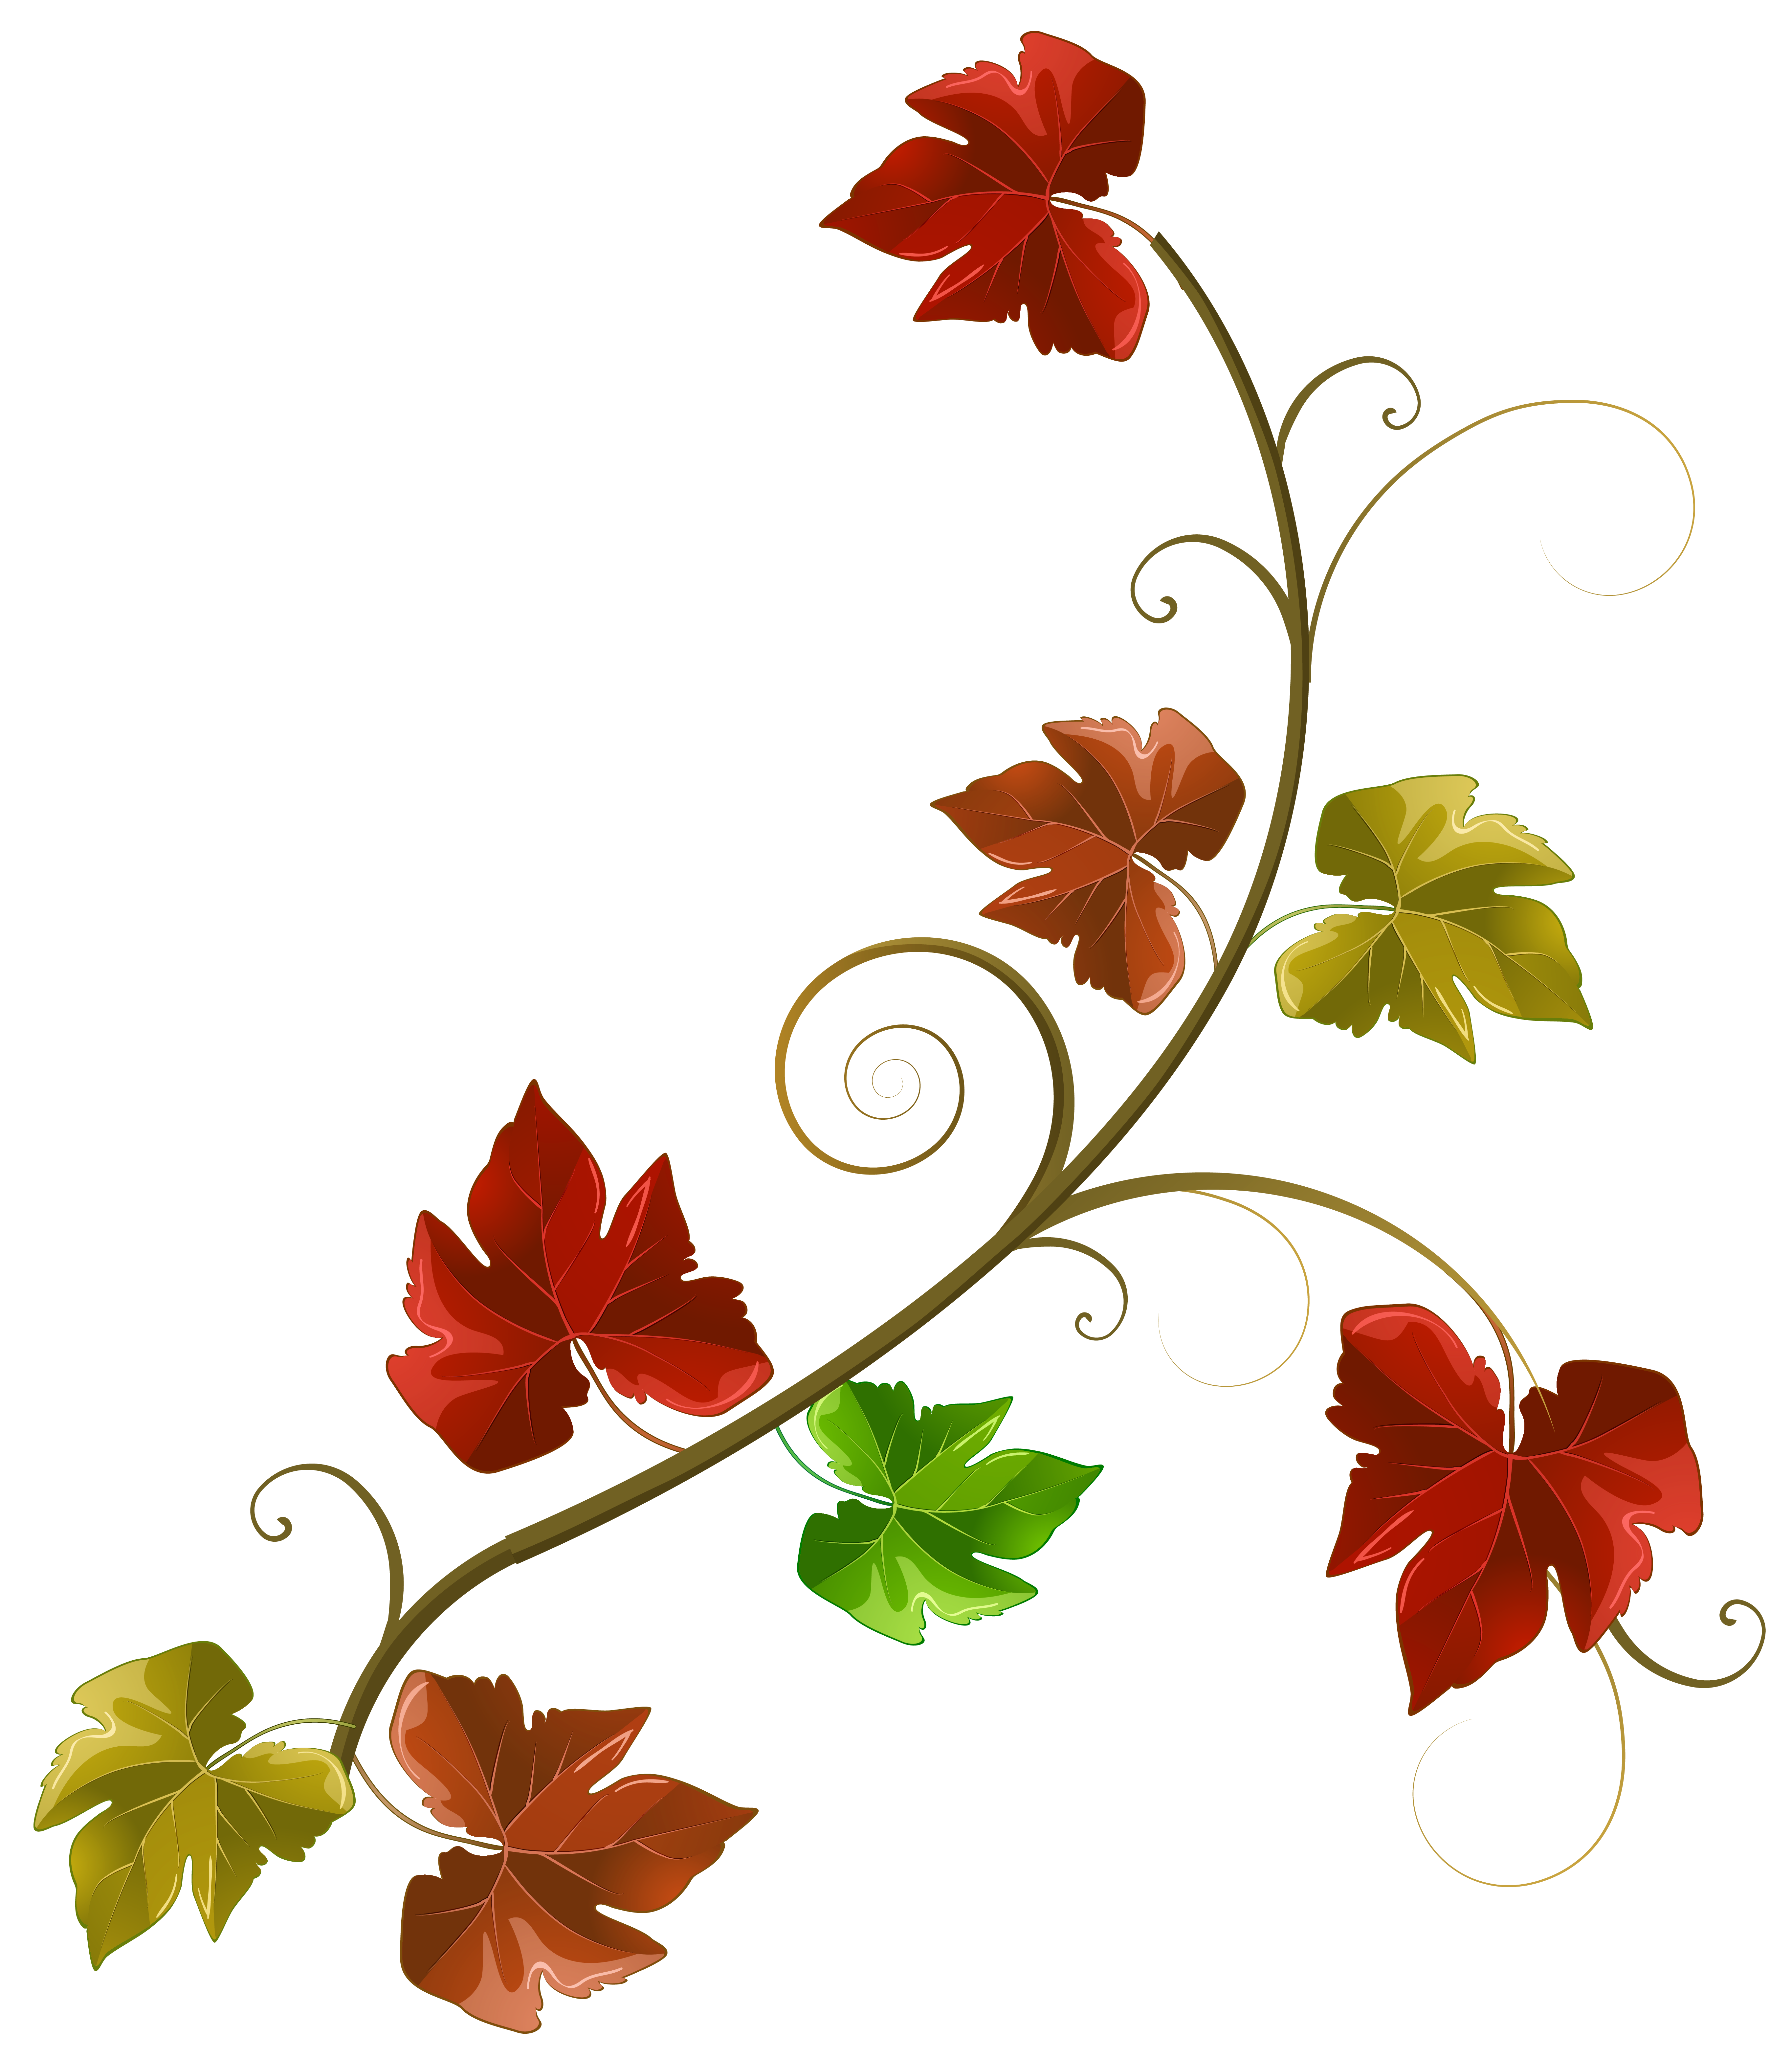 Autumn Leaves Decoration Clipart PNG Image.